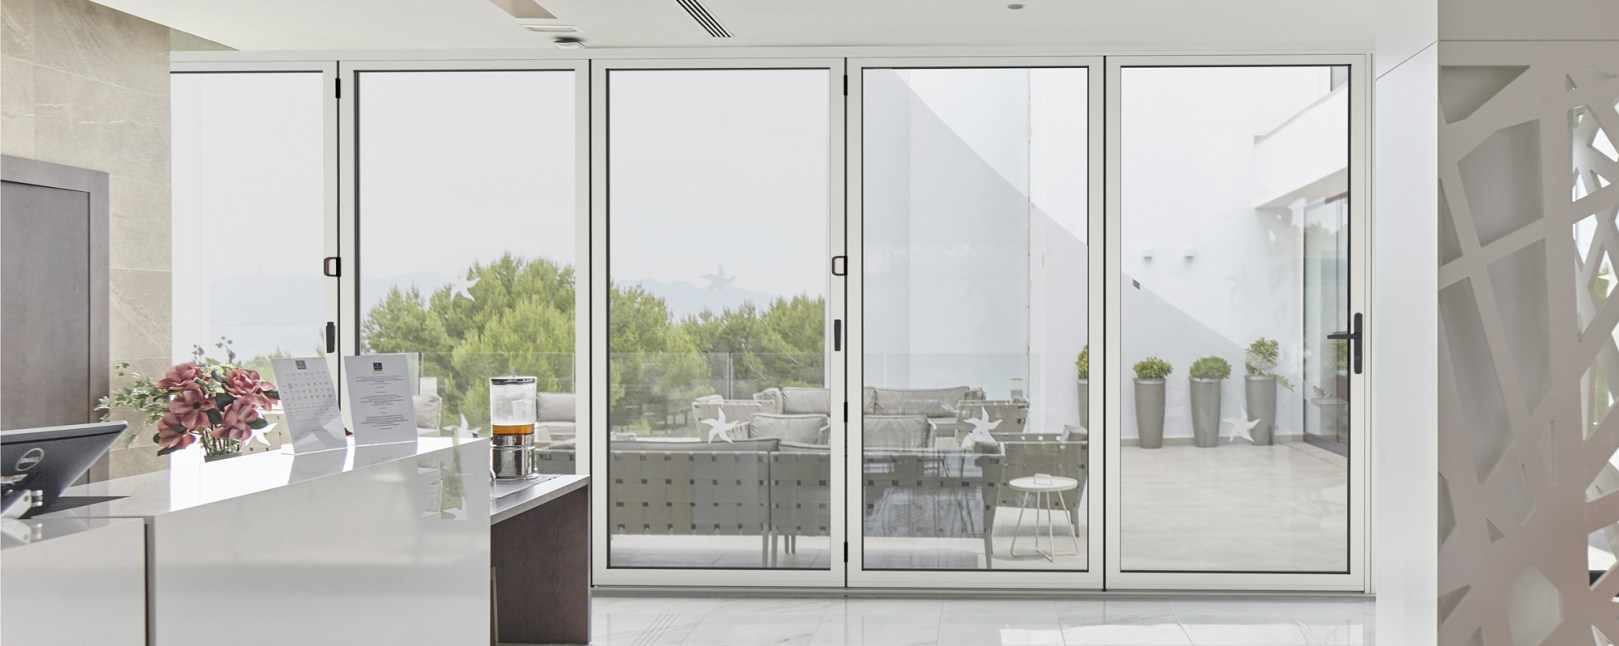 studio glide bifold door